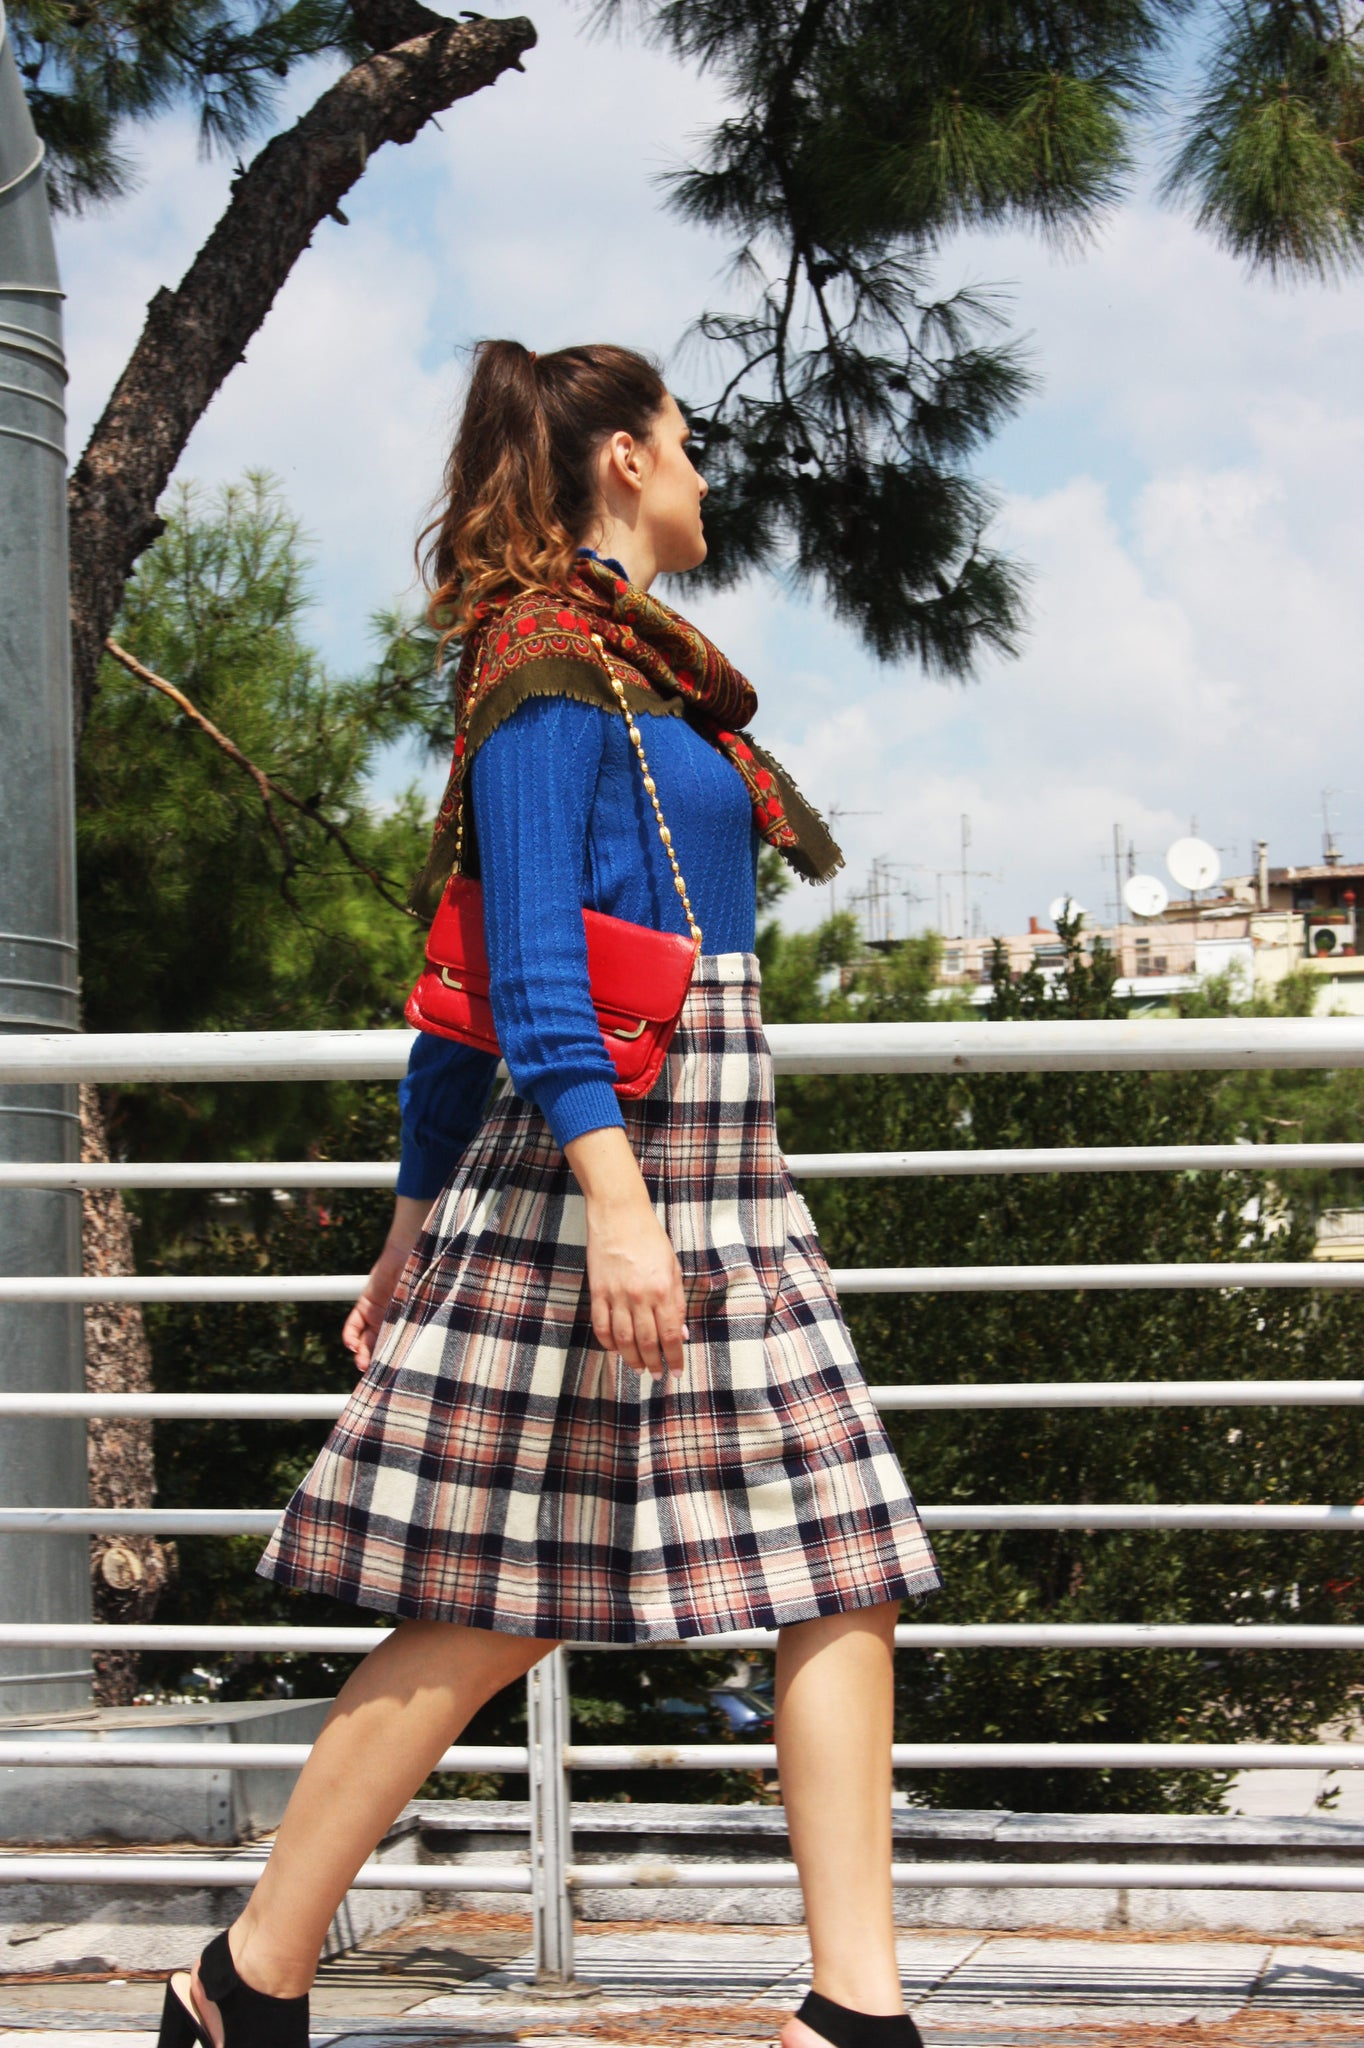 Vintage wool Scottish kilt skirt - SoLovesVintage